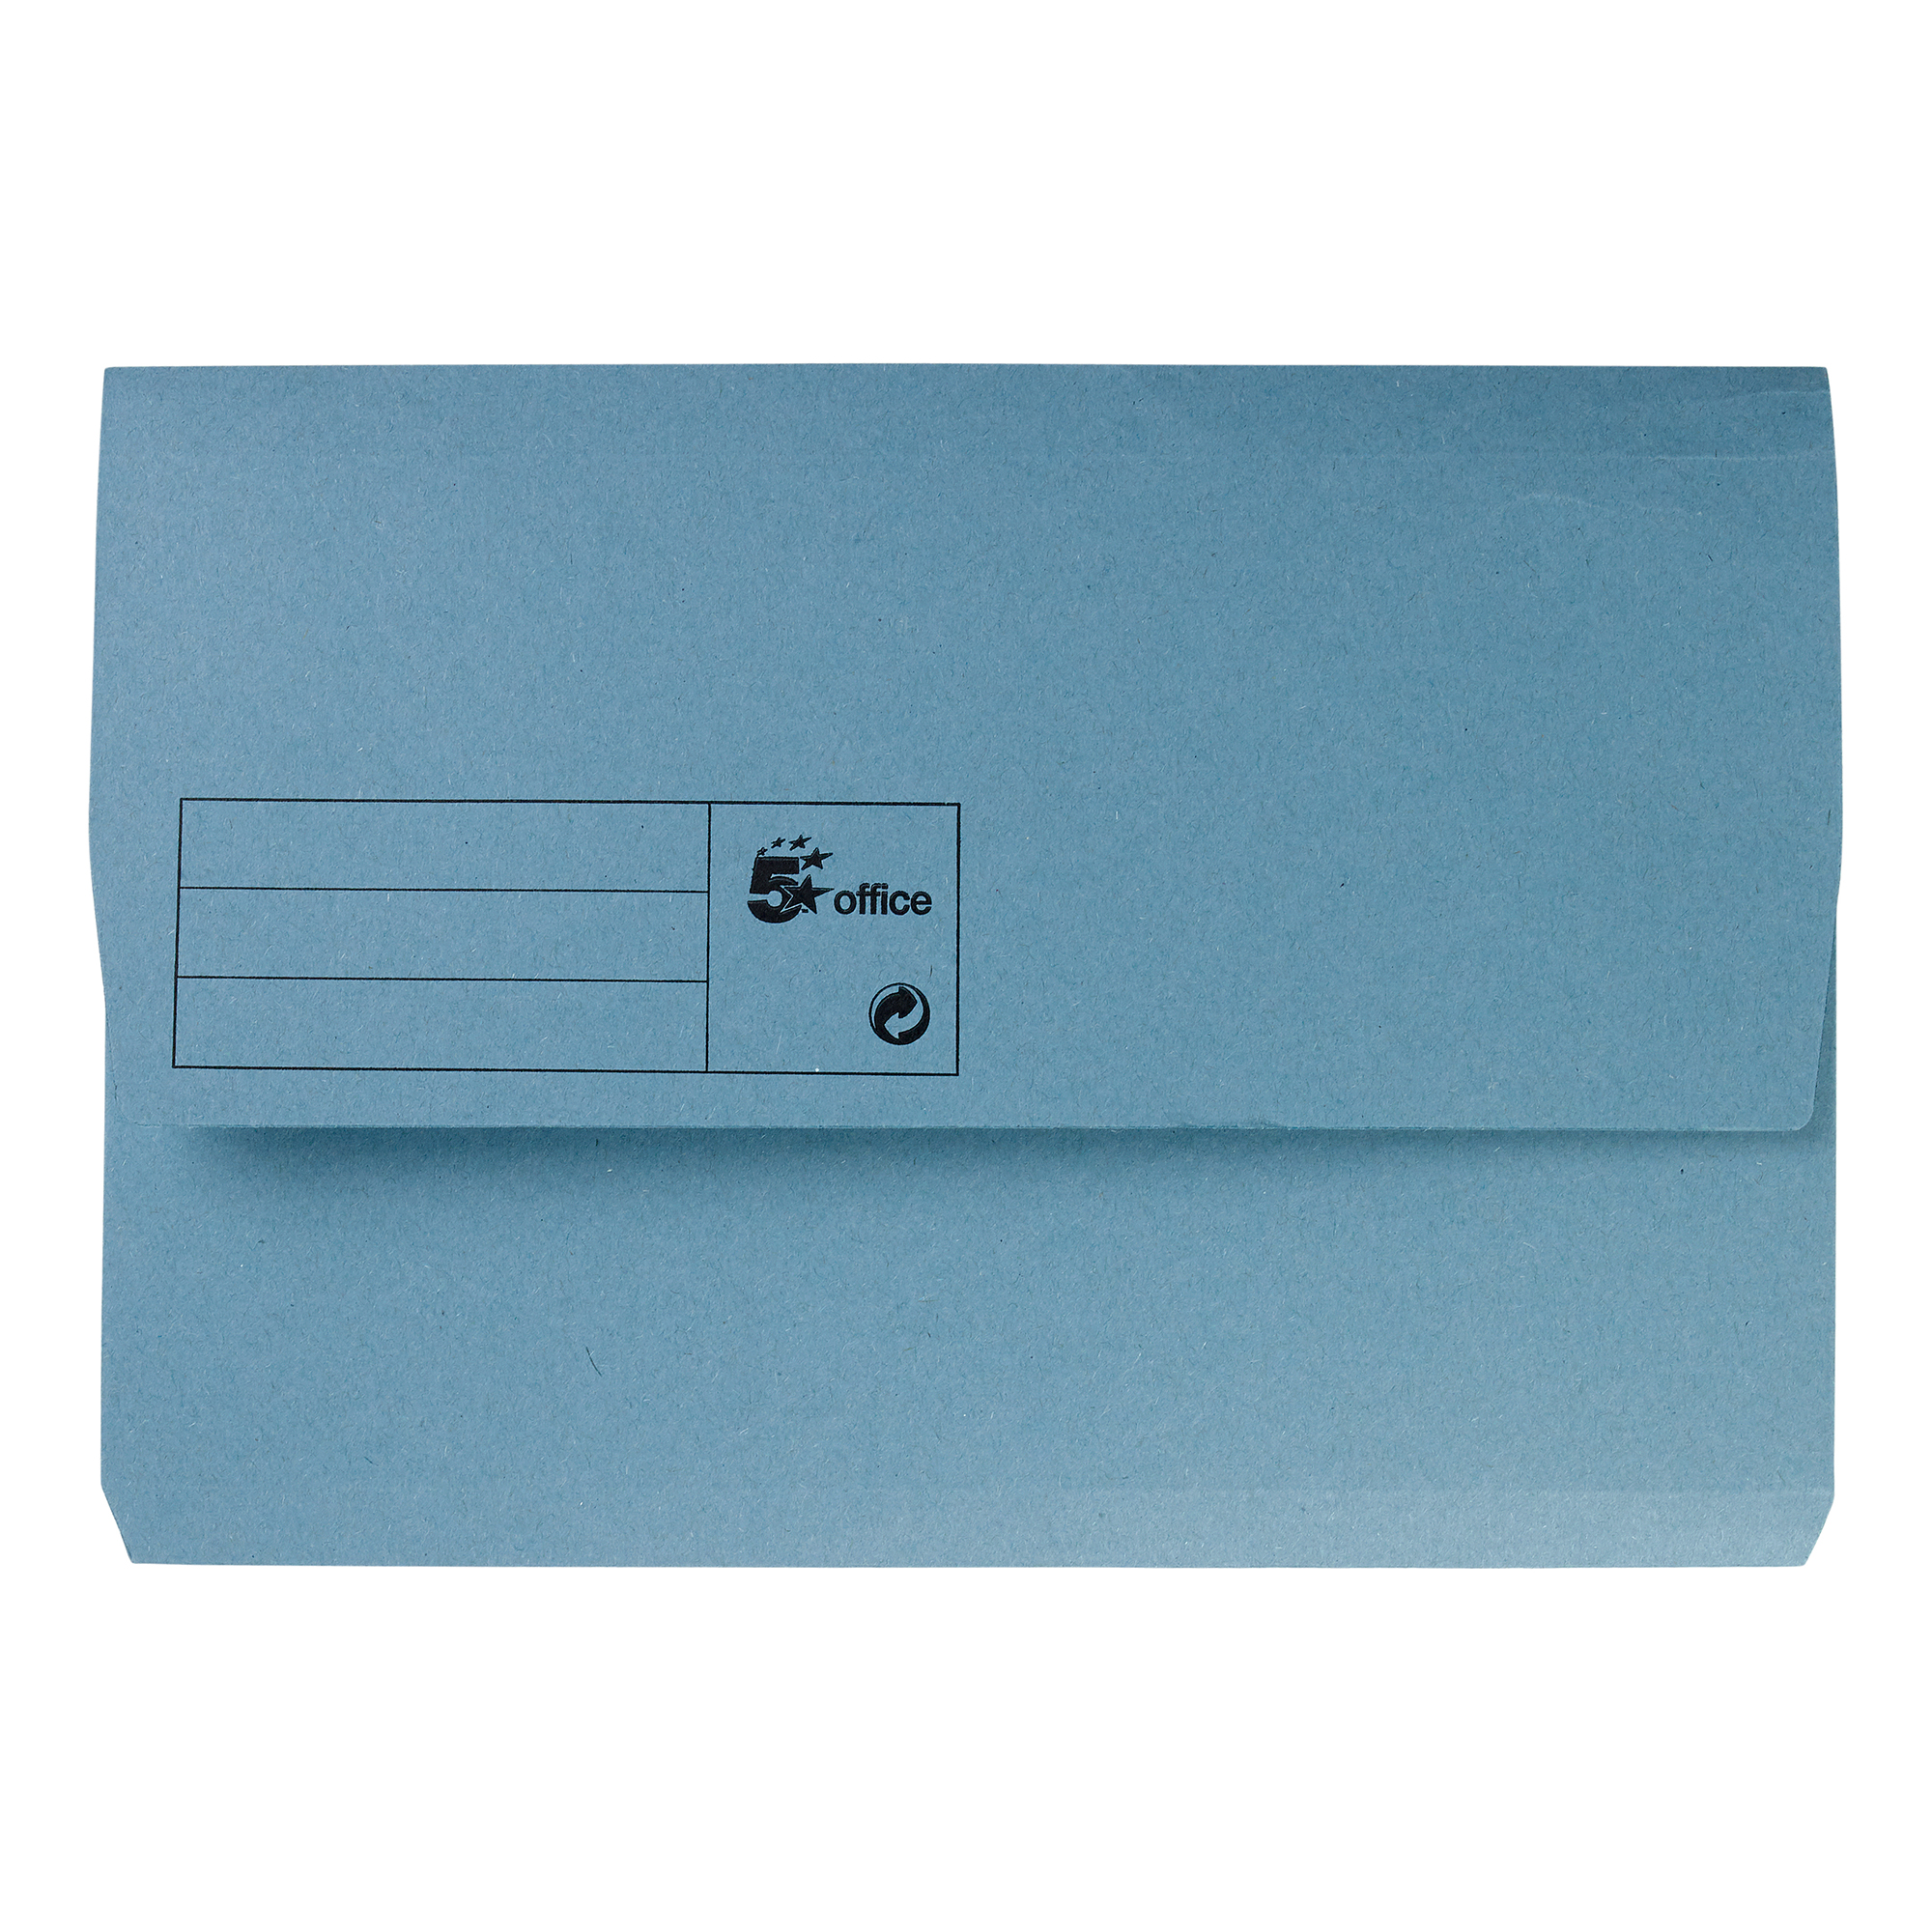 5 Star Premier Document Wallet Half Flap 285gsm Capacity 32mm Foolscap Blue